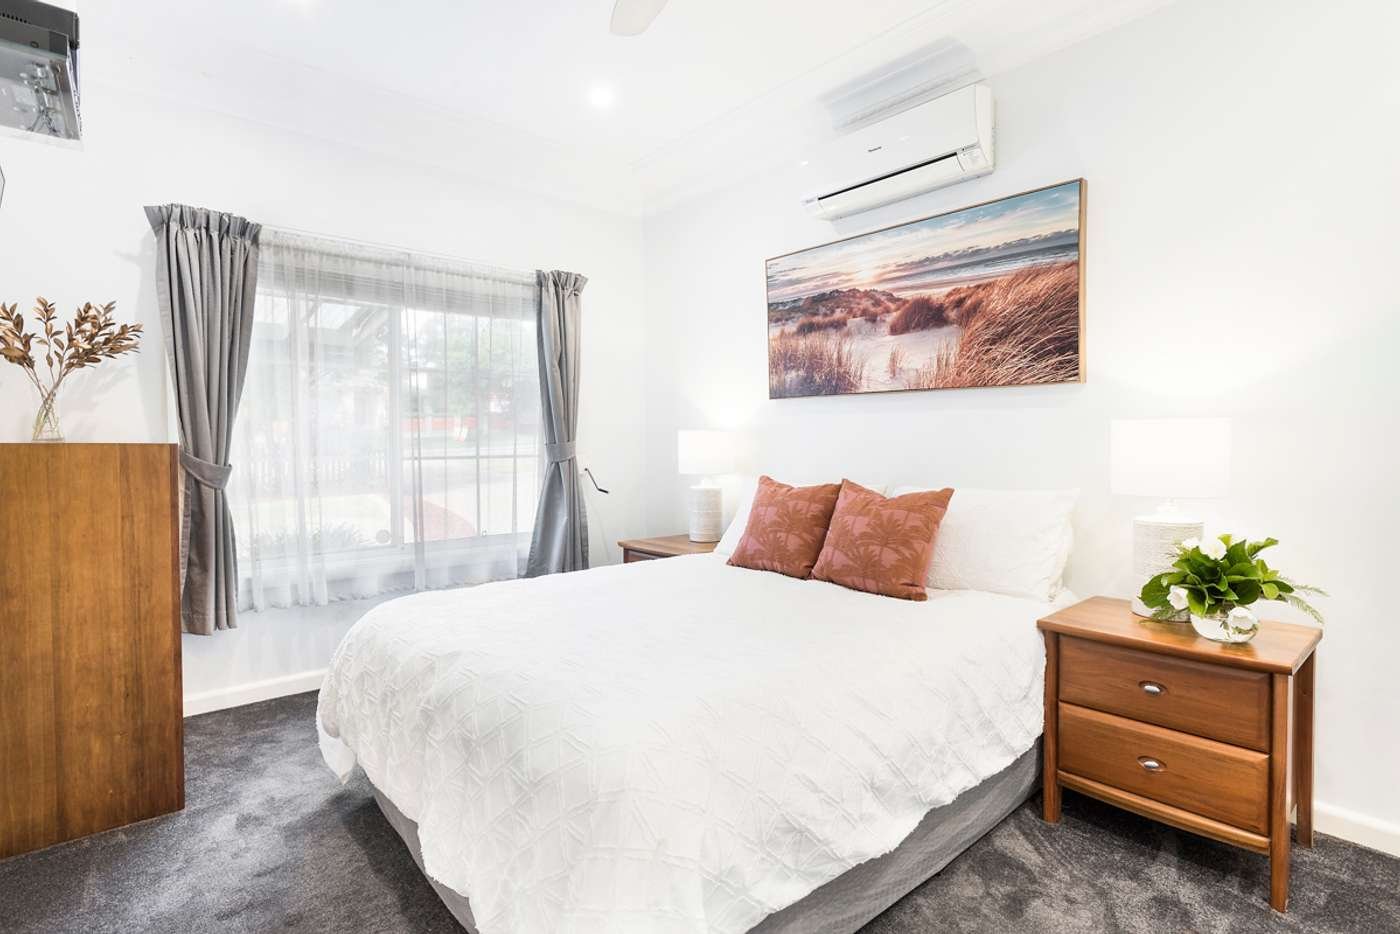 Fifth view of Homely house listing, 419 President Avenue, Kirrawee NSW 2232